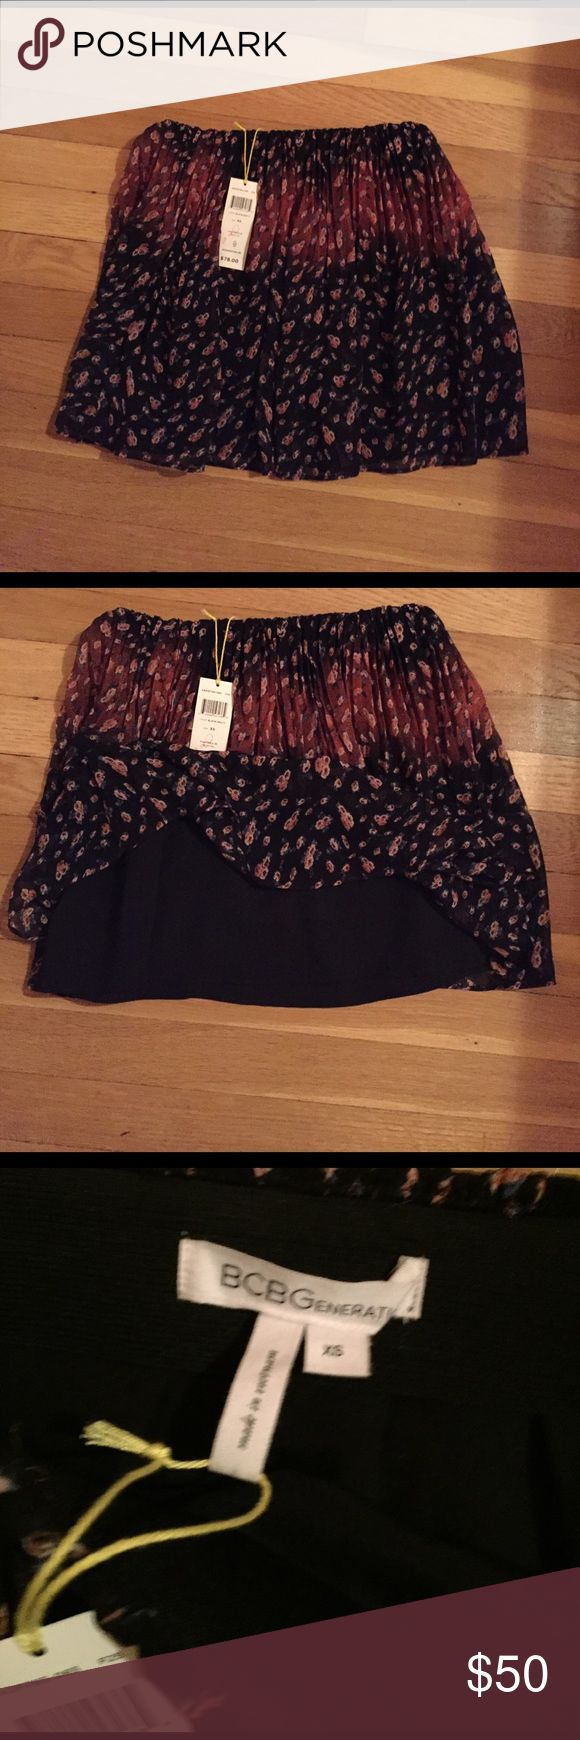 NWT BCBGeneration MINI This is a beautiful skirt NWT Ombro' BCBGeneration Skirts Mini